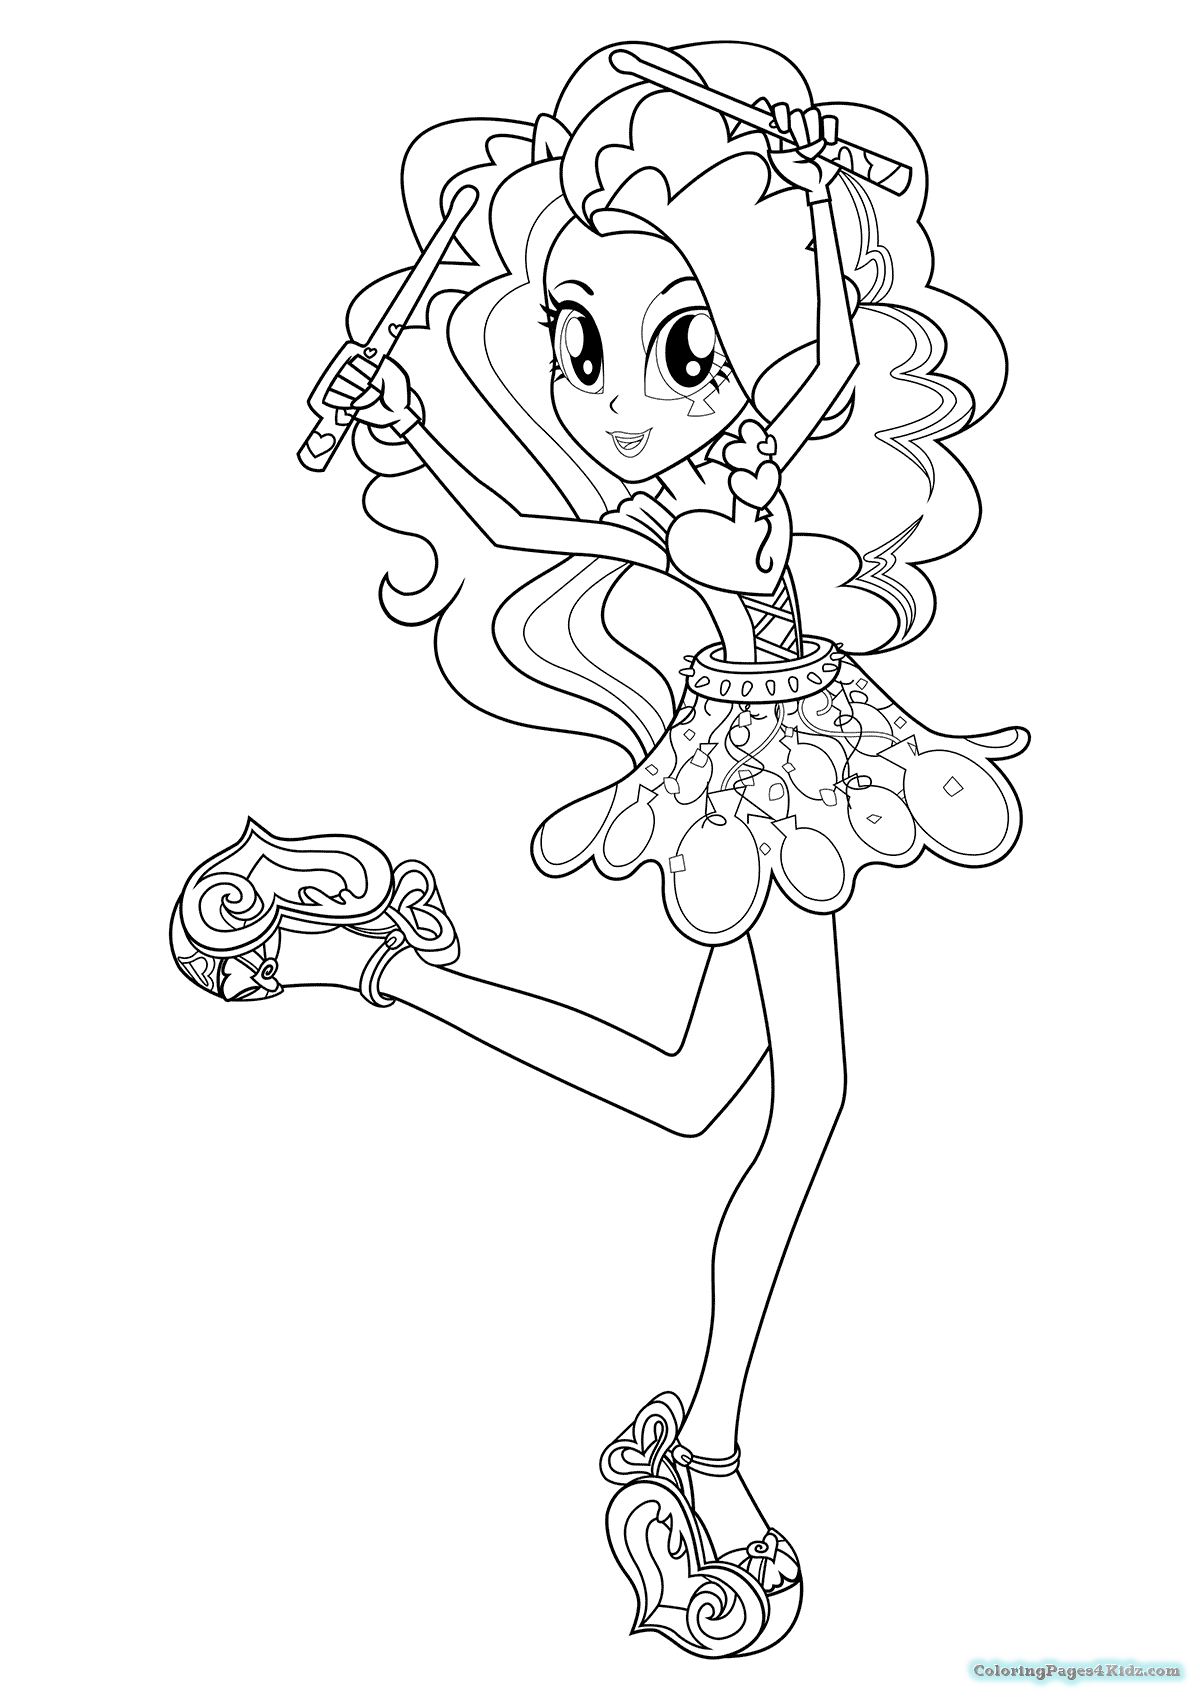 1200x1700 The Best My Little Pony Equestria Girl Coloring Pages Pict